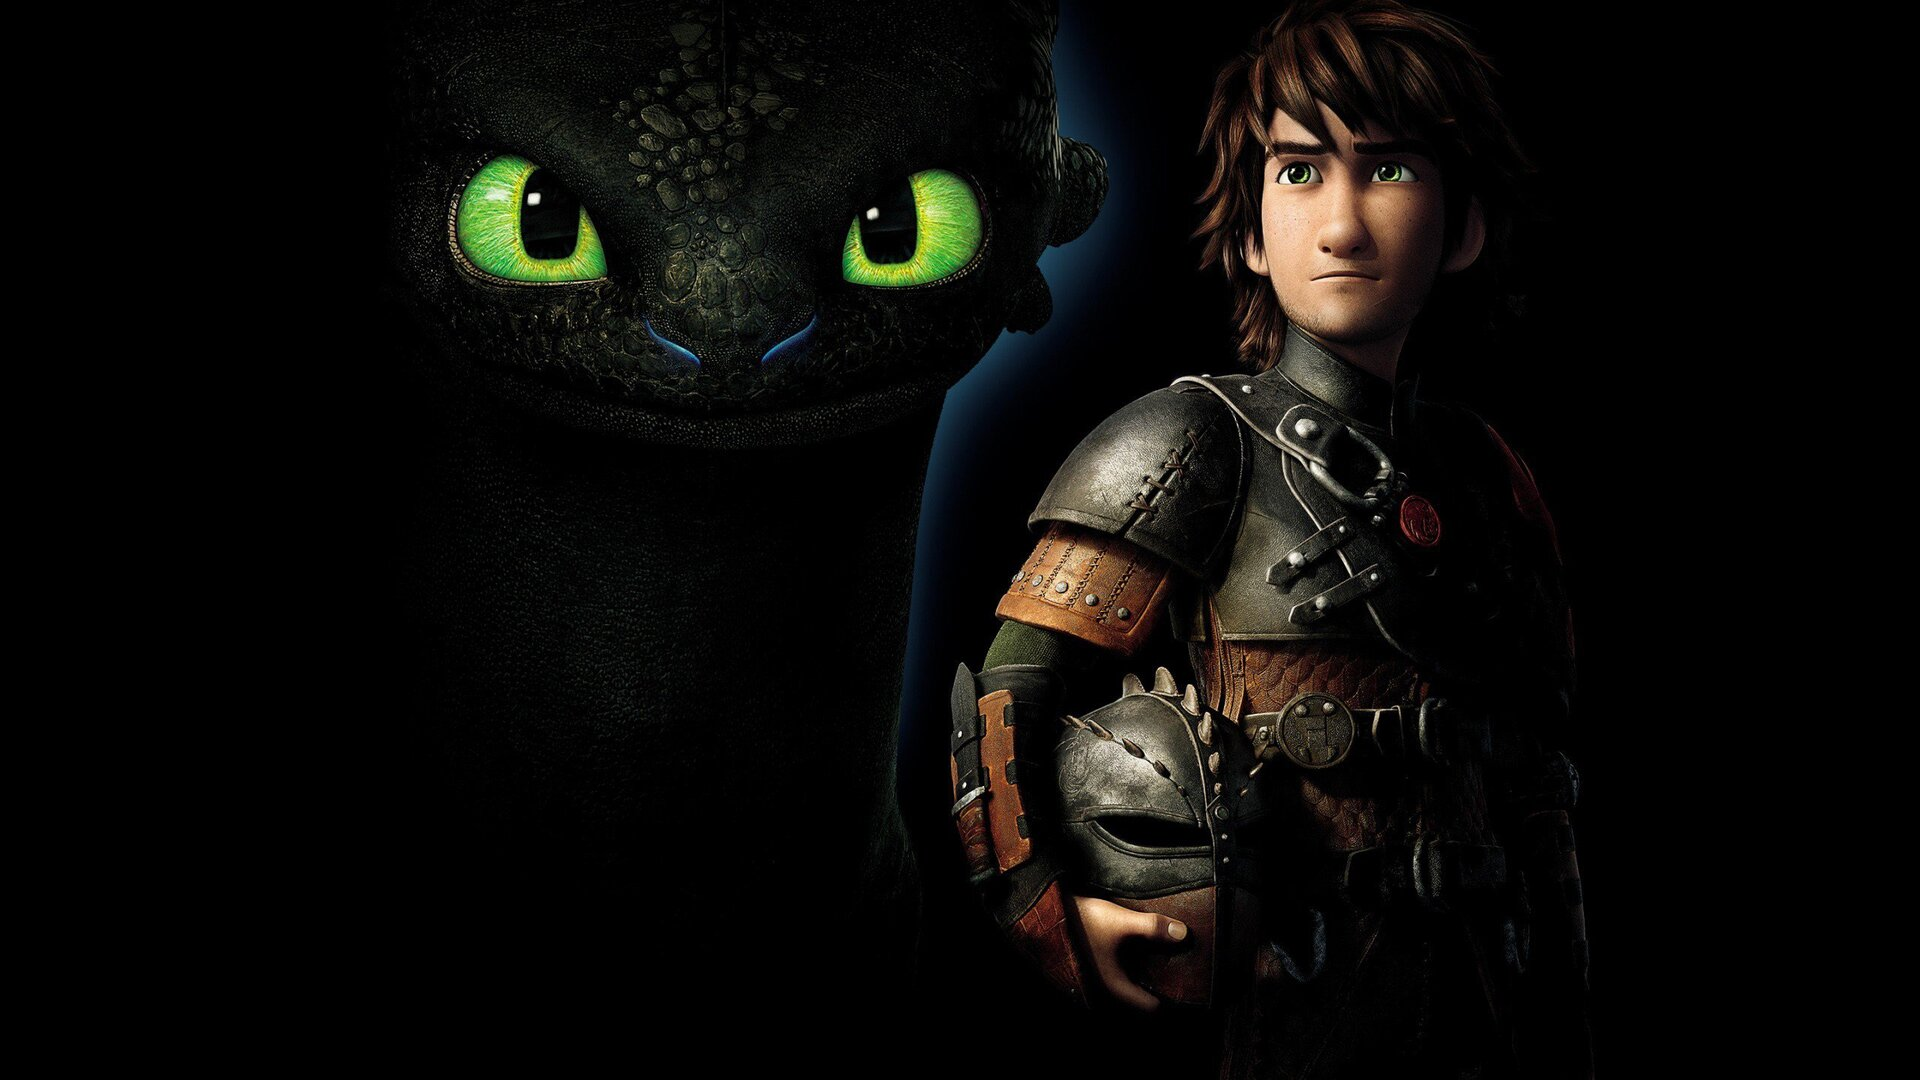 1920x1080 how to train your dragon hd laptop full hd 1080p - How to train your dragon hd download ...